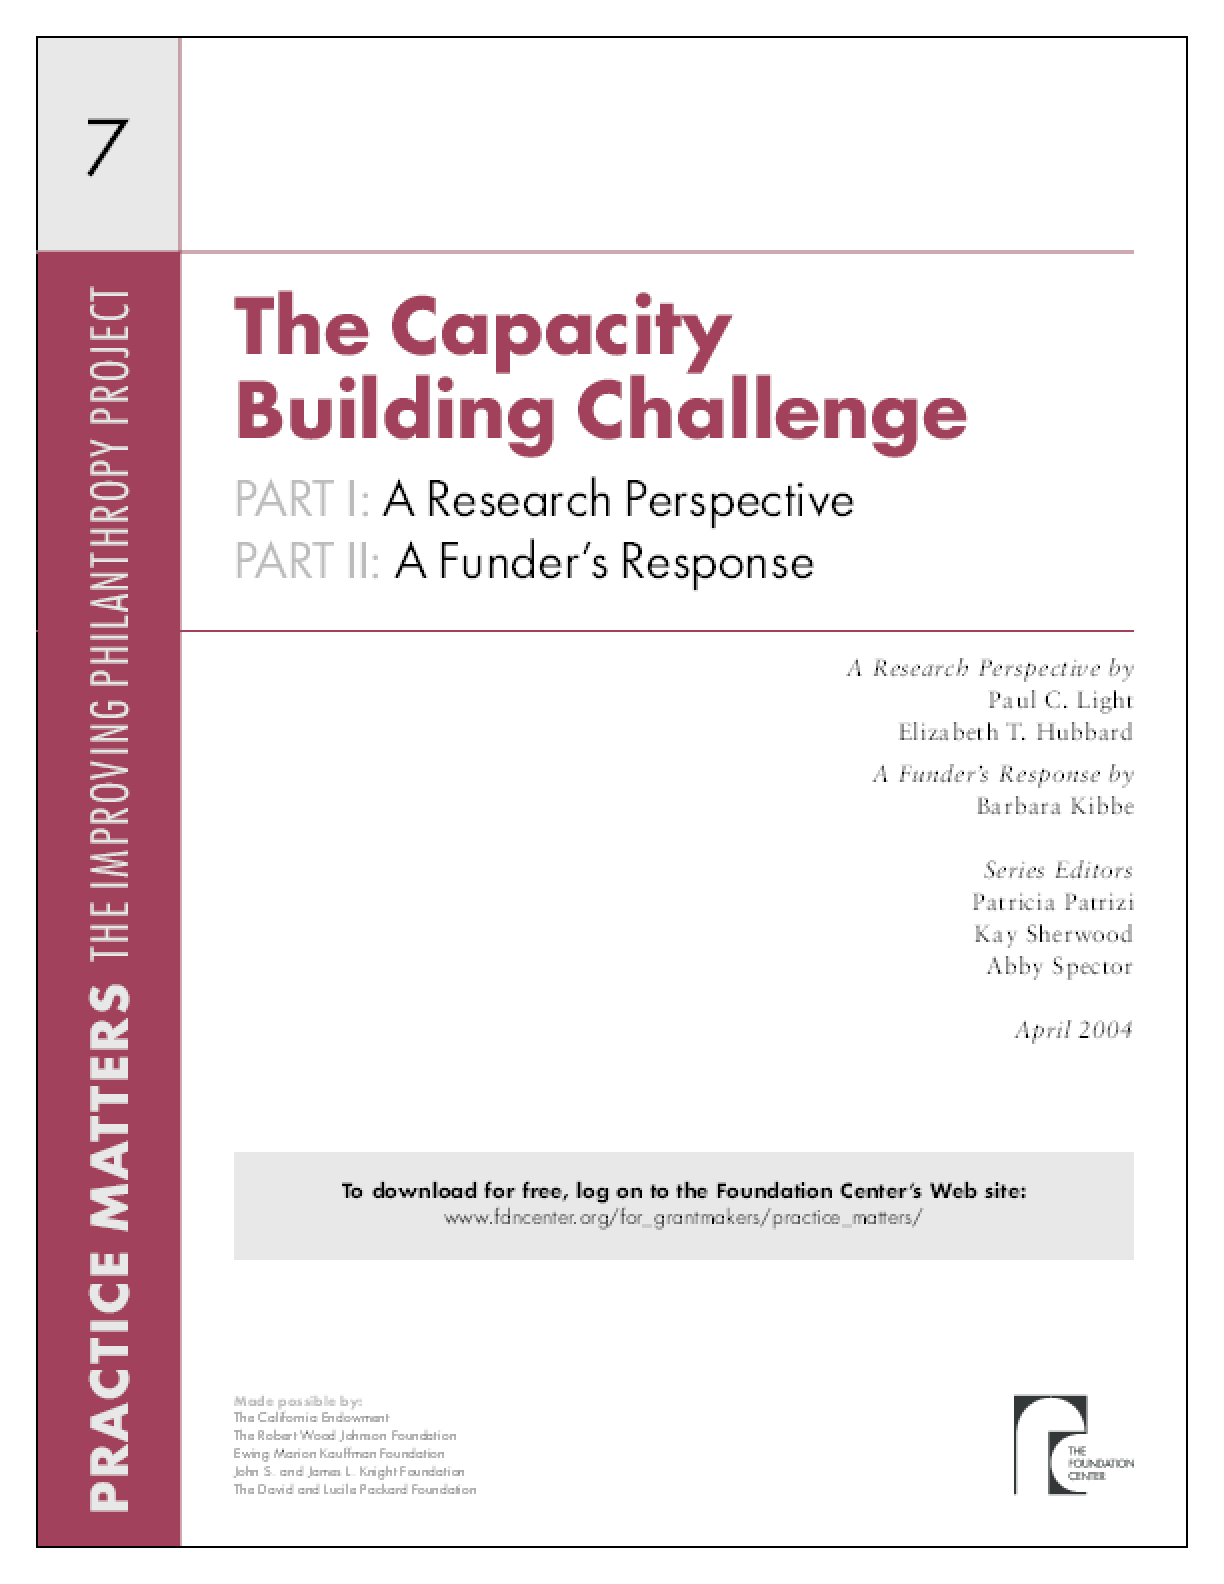 The Capacity Building Challenge -- Part I: A Research Perspective